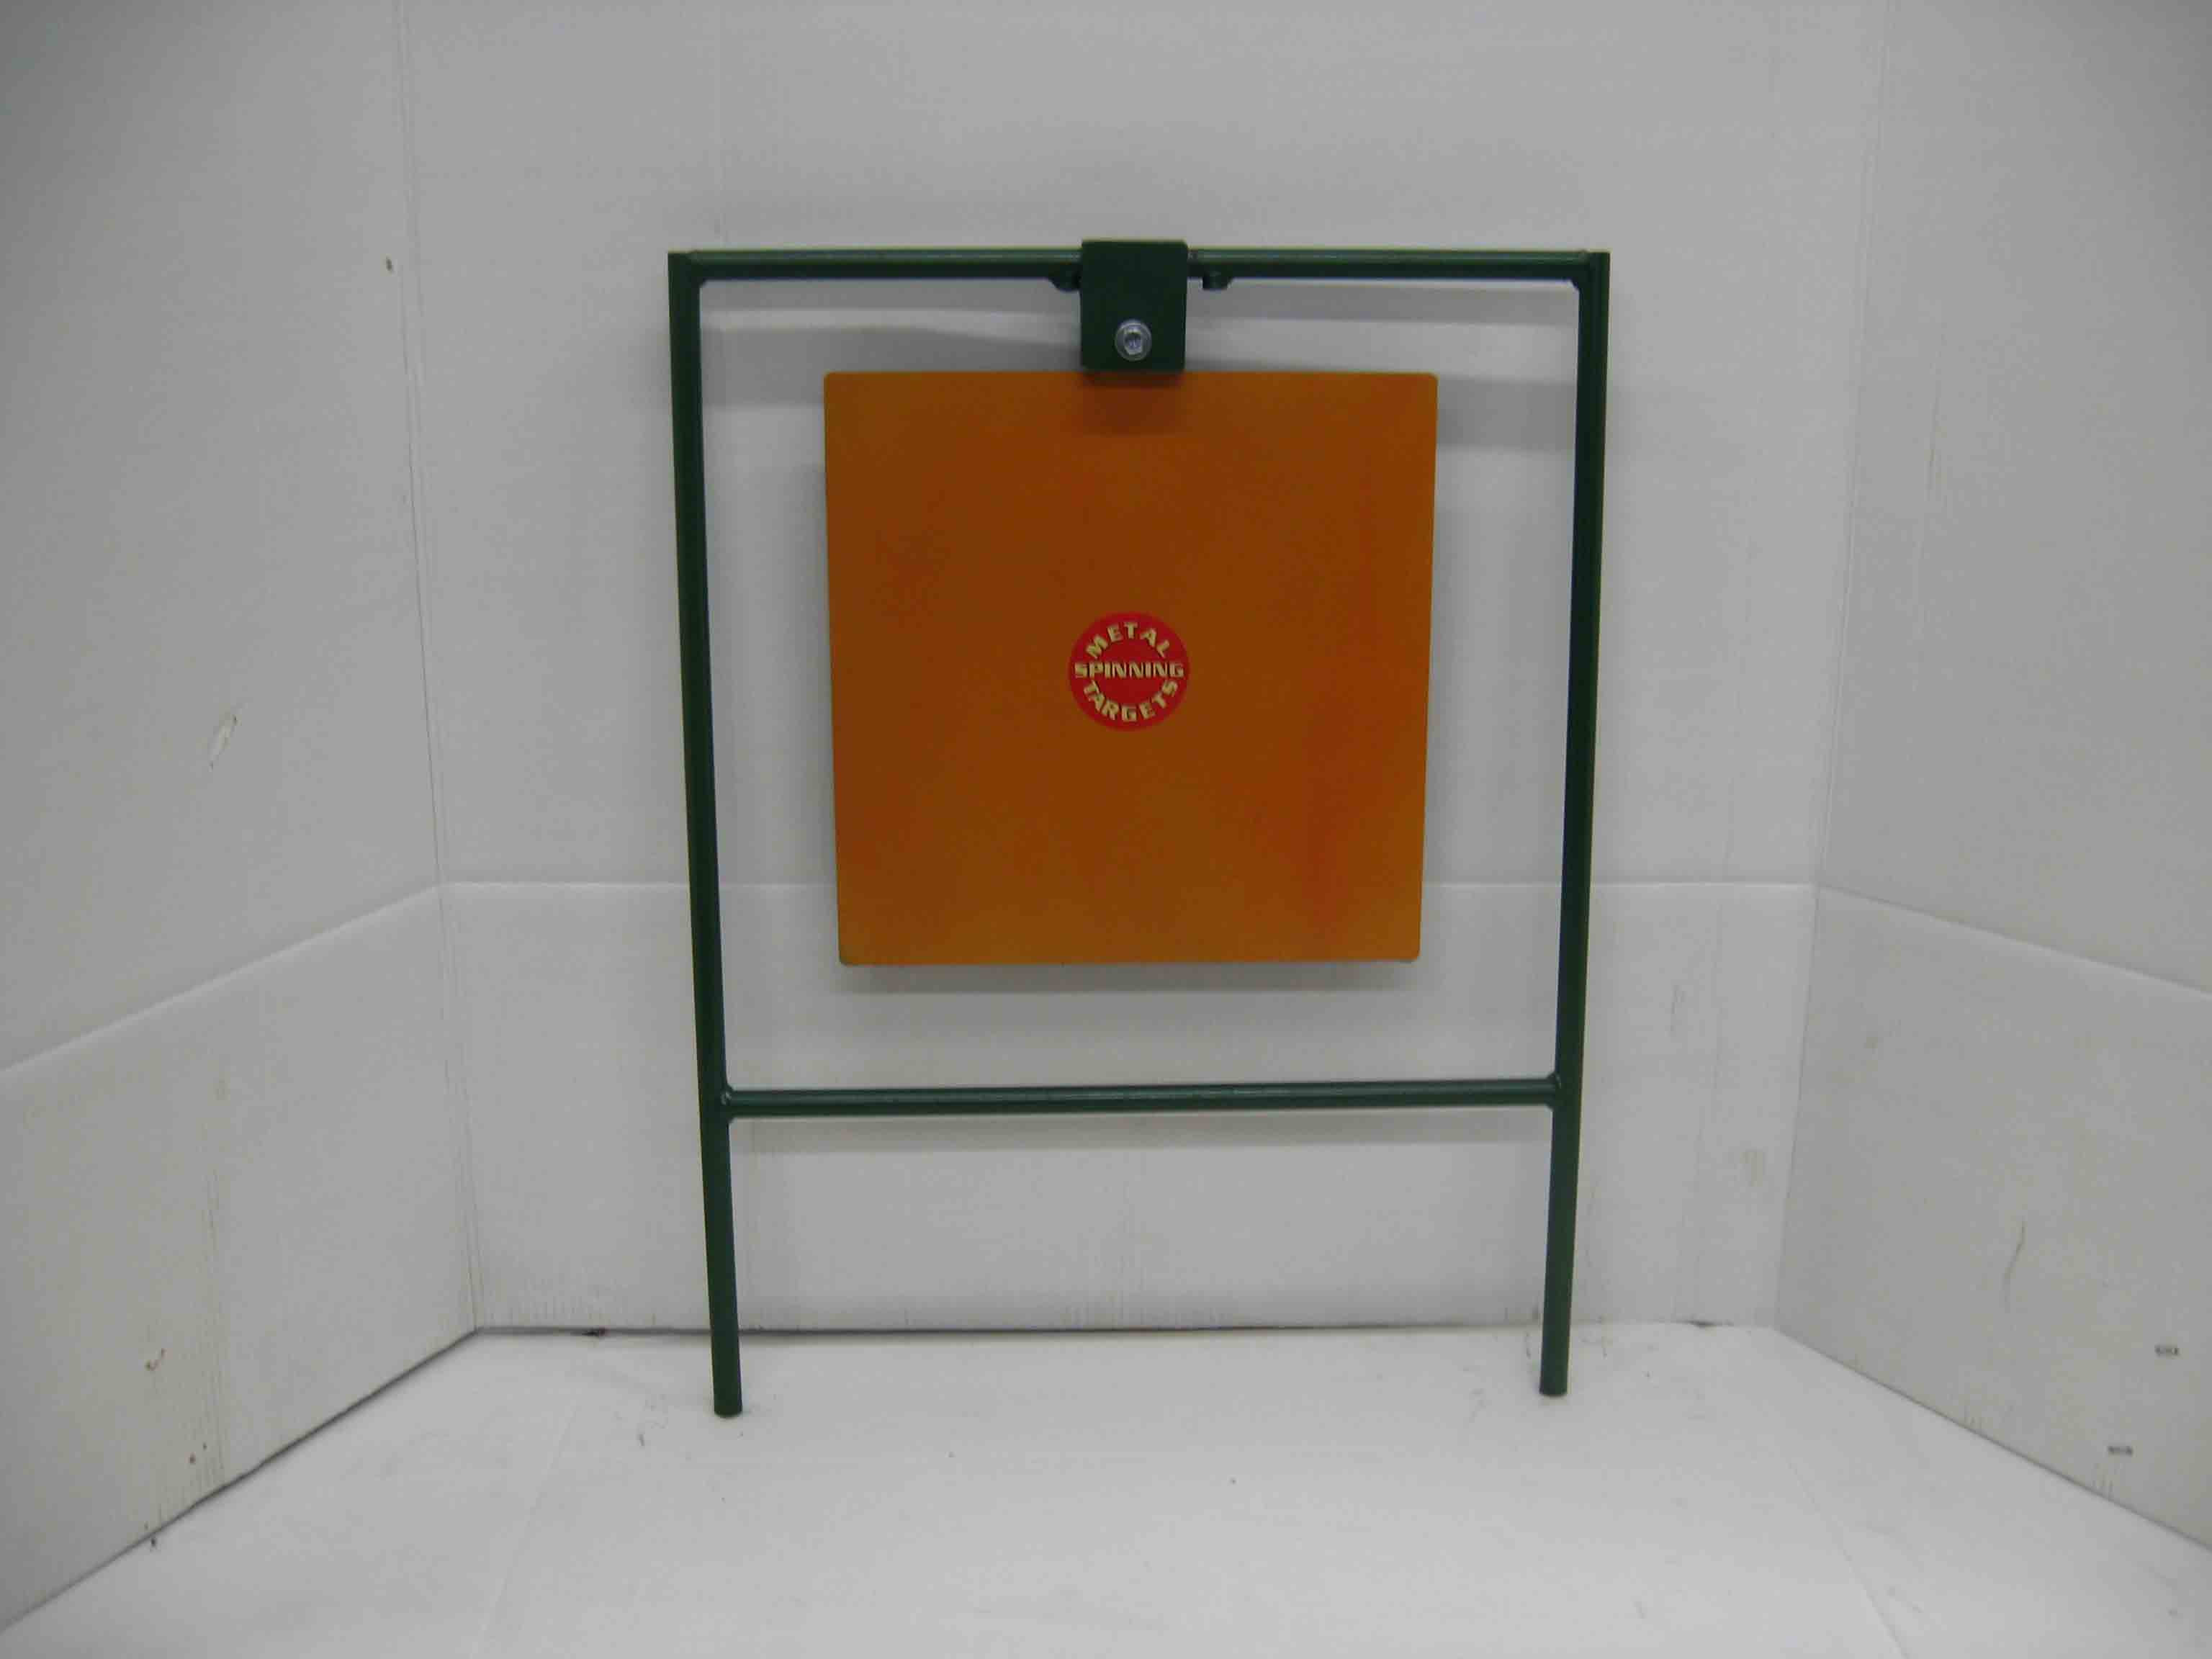 Square Steel Shooting Targets - Rifle